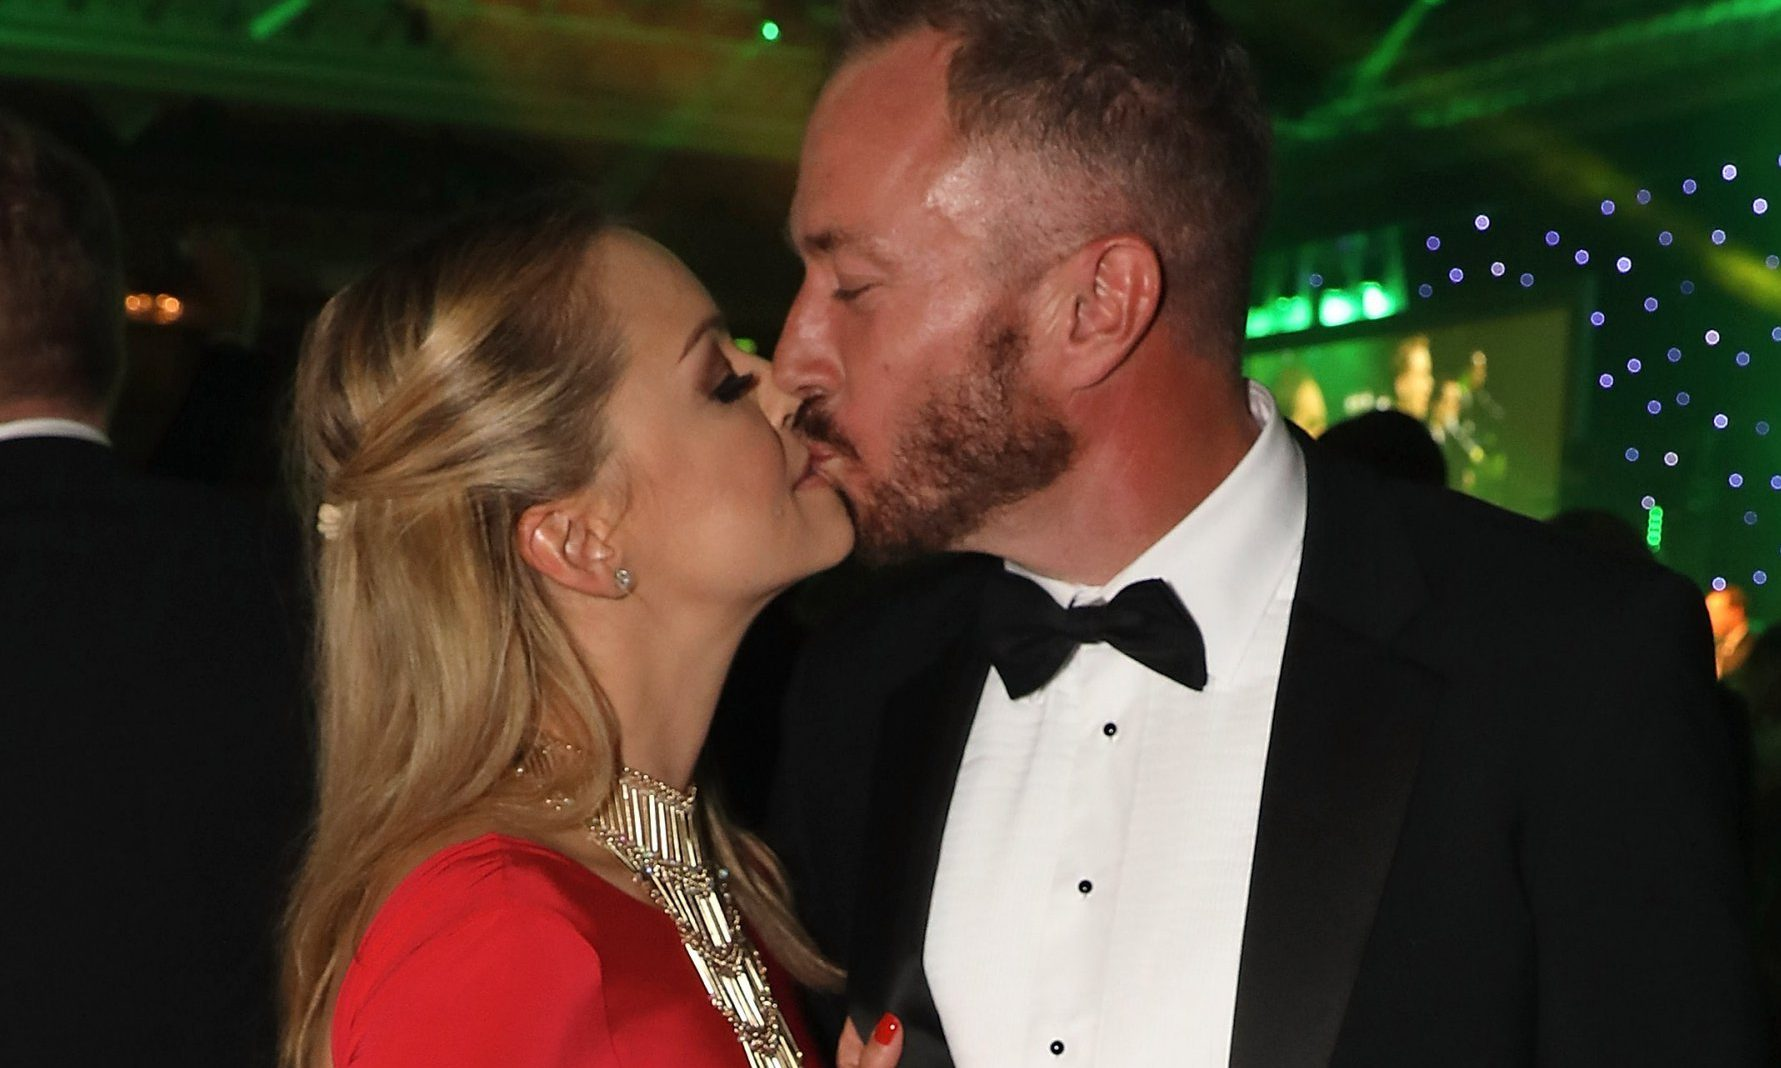 LONDON, ENGLAND - OCTOBER 25: Ola Jordan and James Jordan attend 'An Evening With The Stars' charity gala in aid of Save The Children at The Grosvenor House Hotel on October 25, 2016 in London, England. (Photo by David M. Benett/Dave Benett/Getty Images)